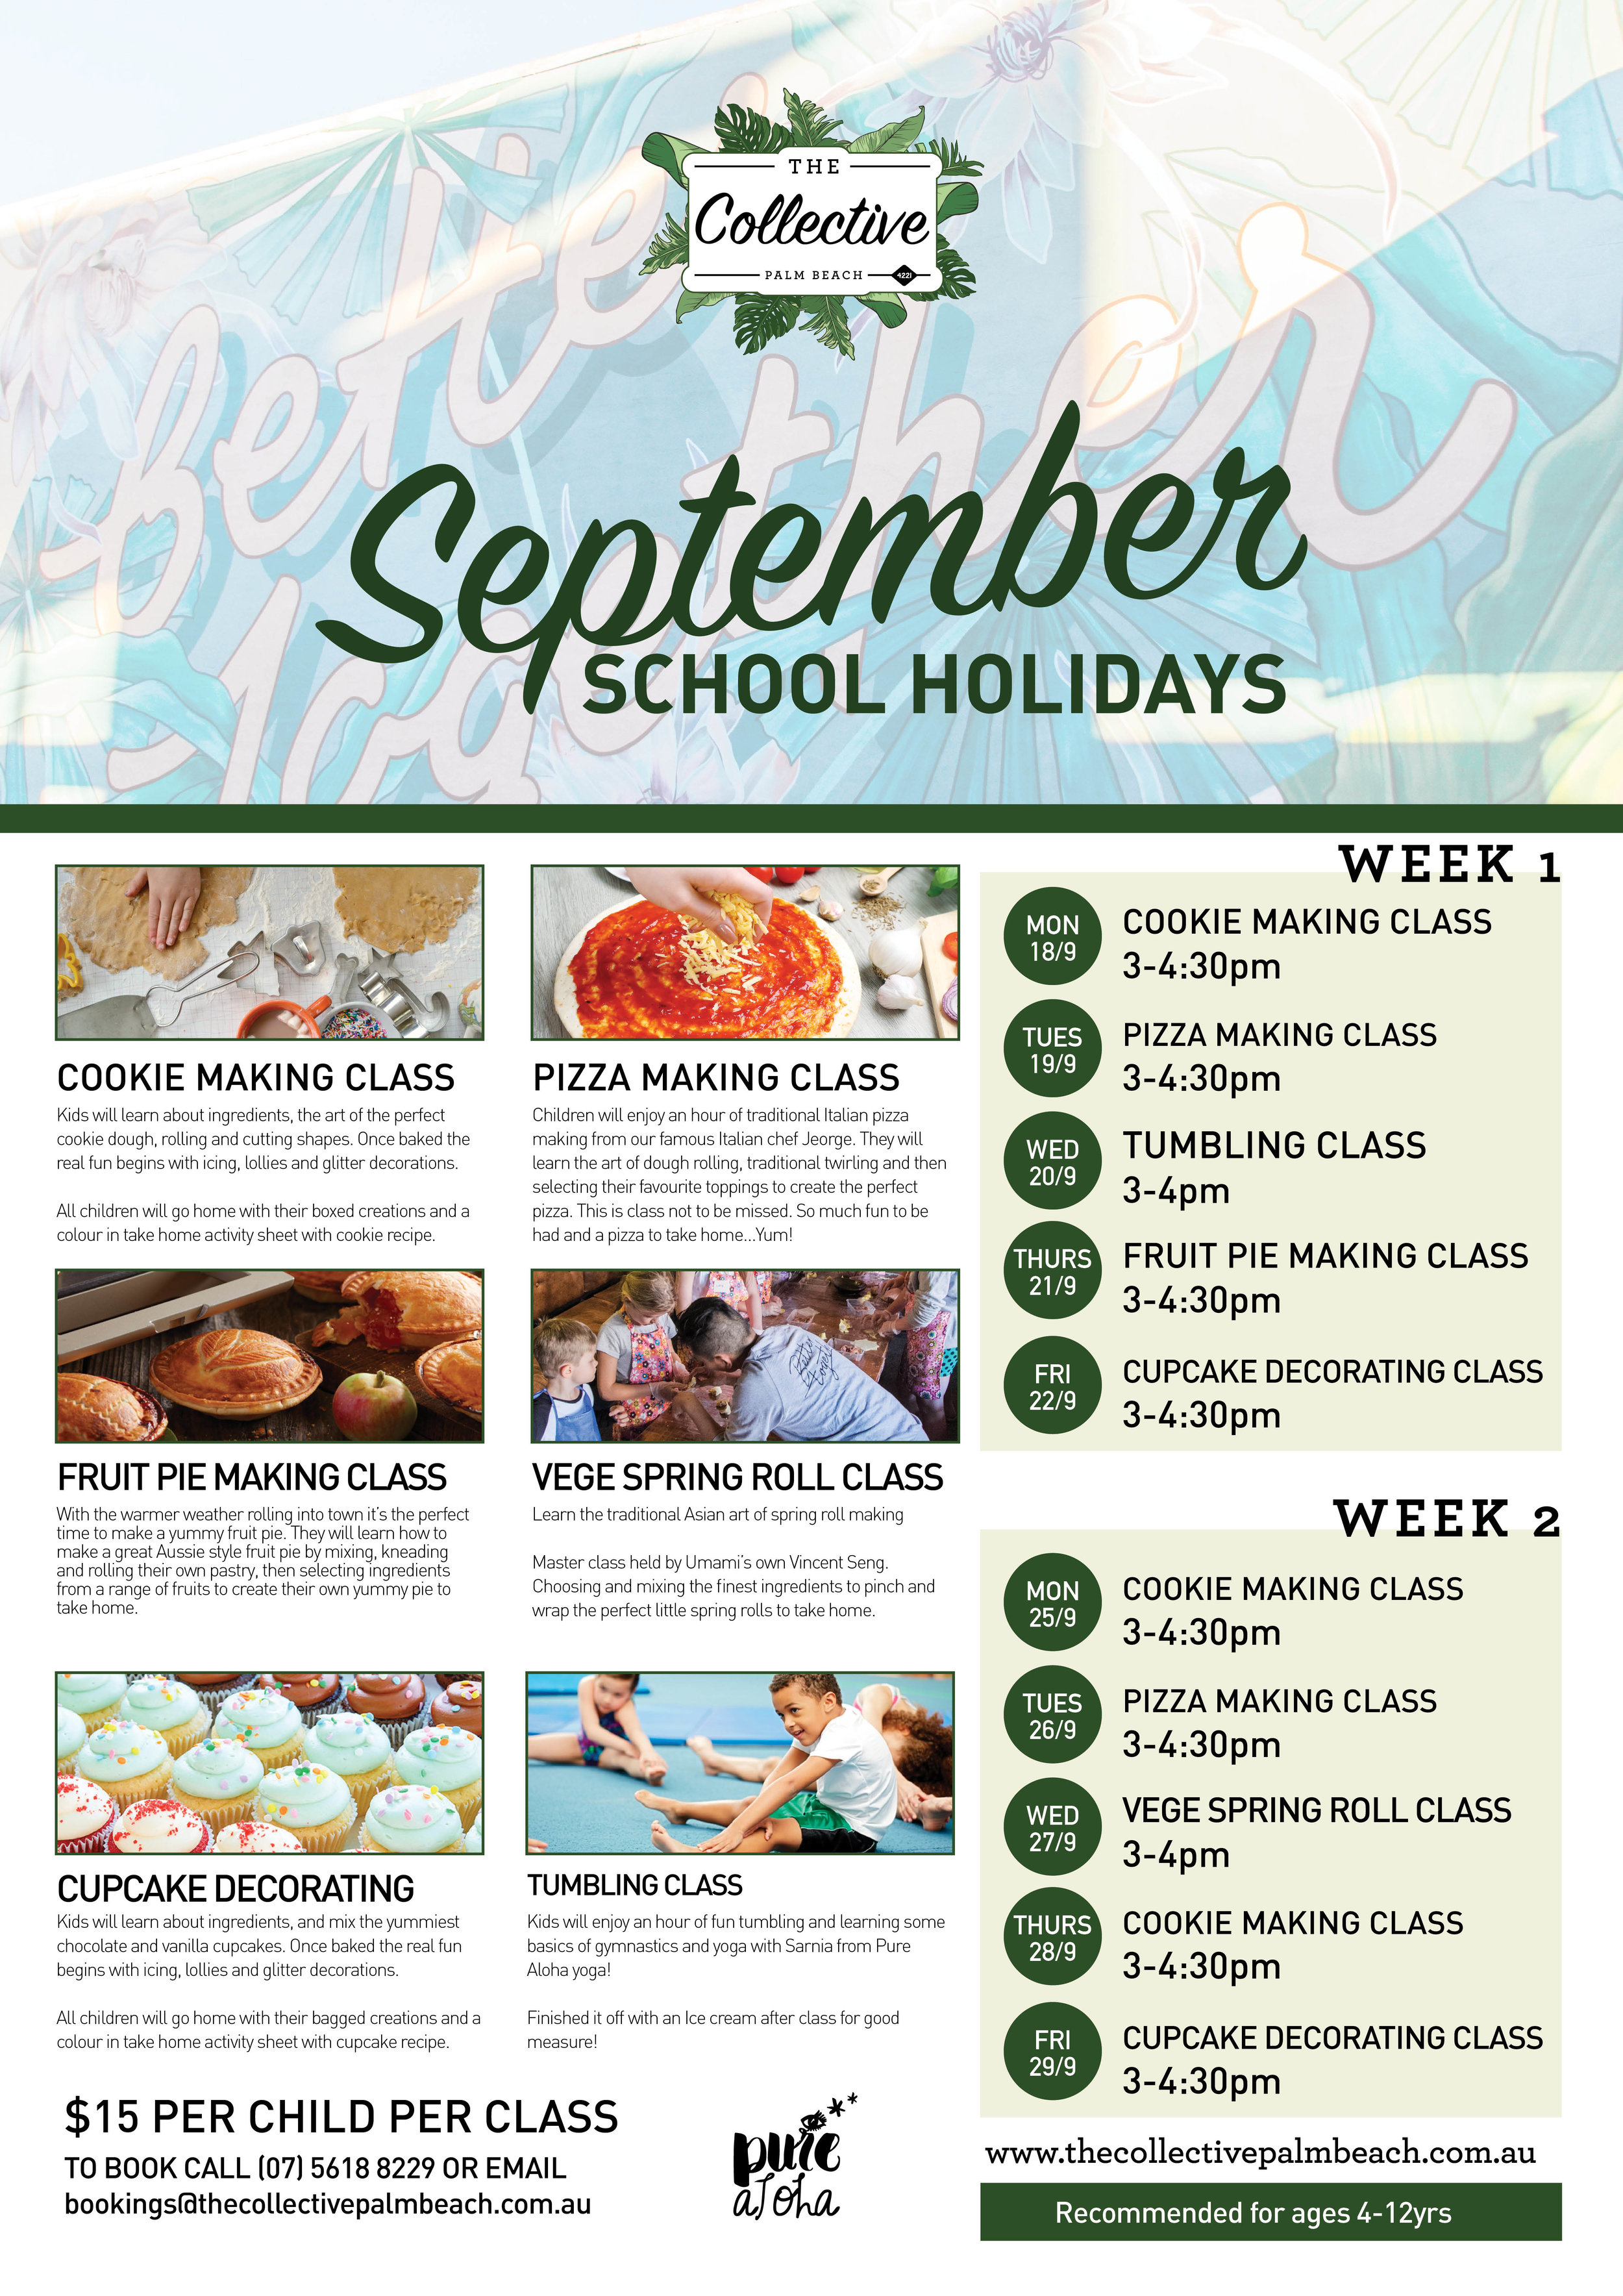 Sept School Holidays-The Collective_Web.jpg